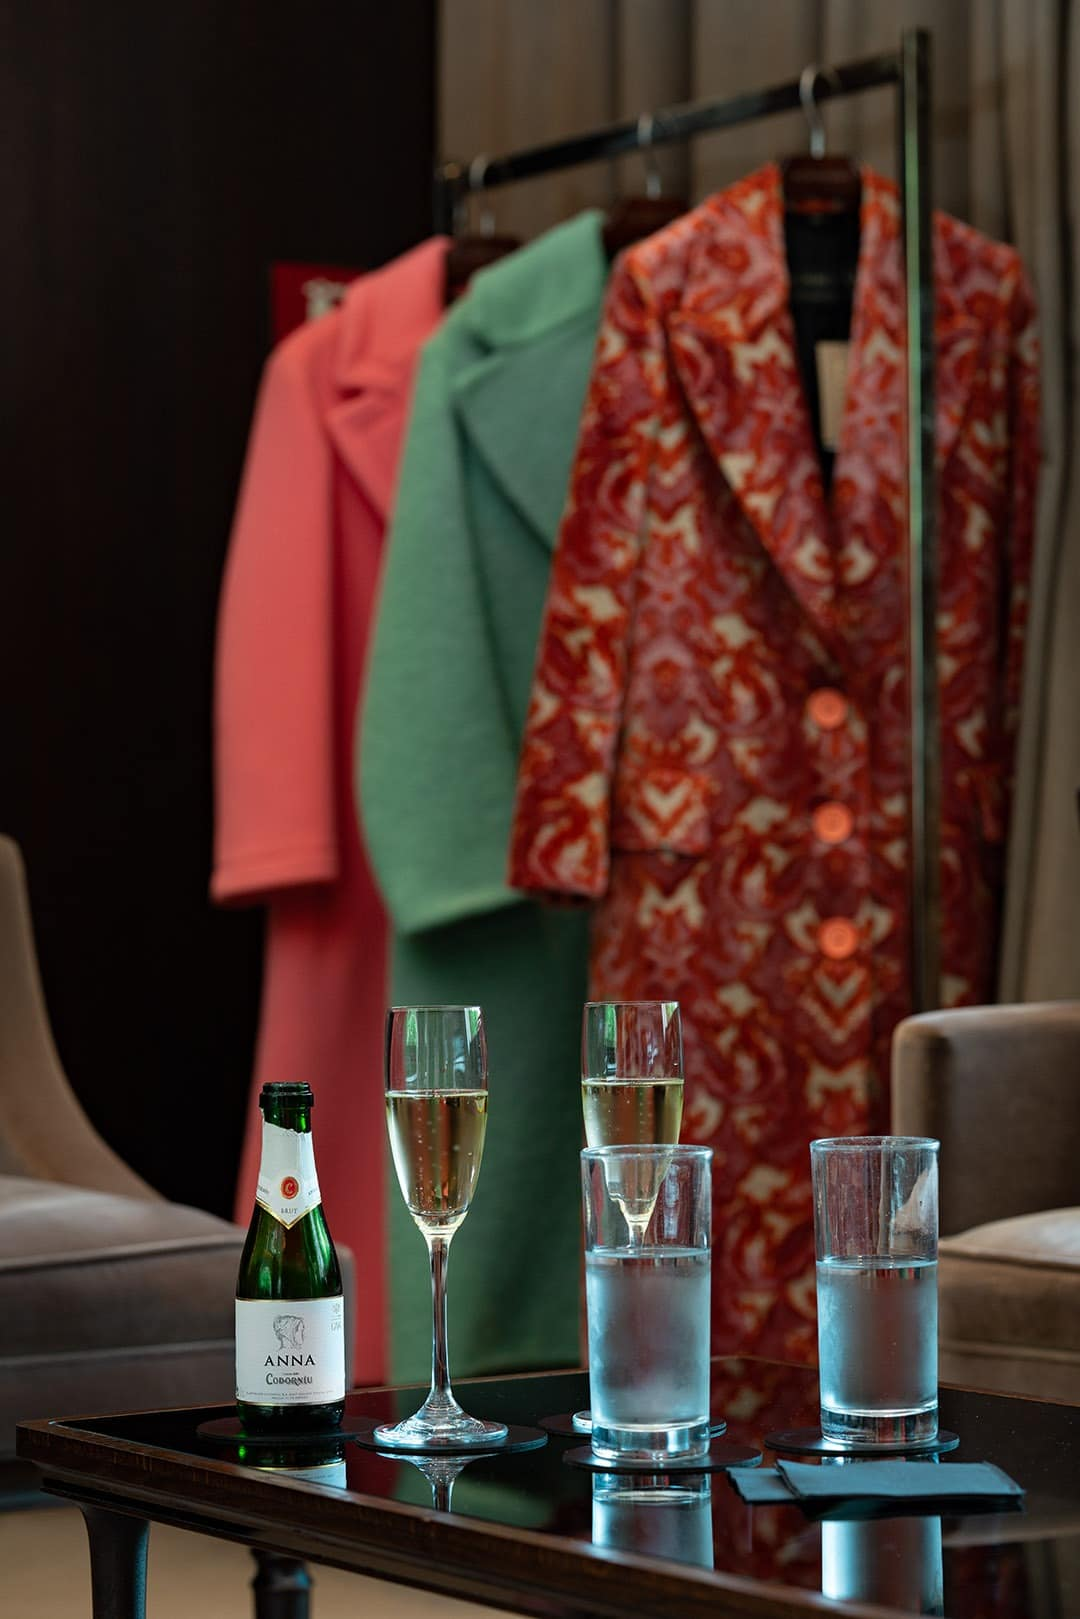 BURBERRY'S VIP FITTING ROOM champagne